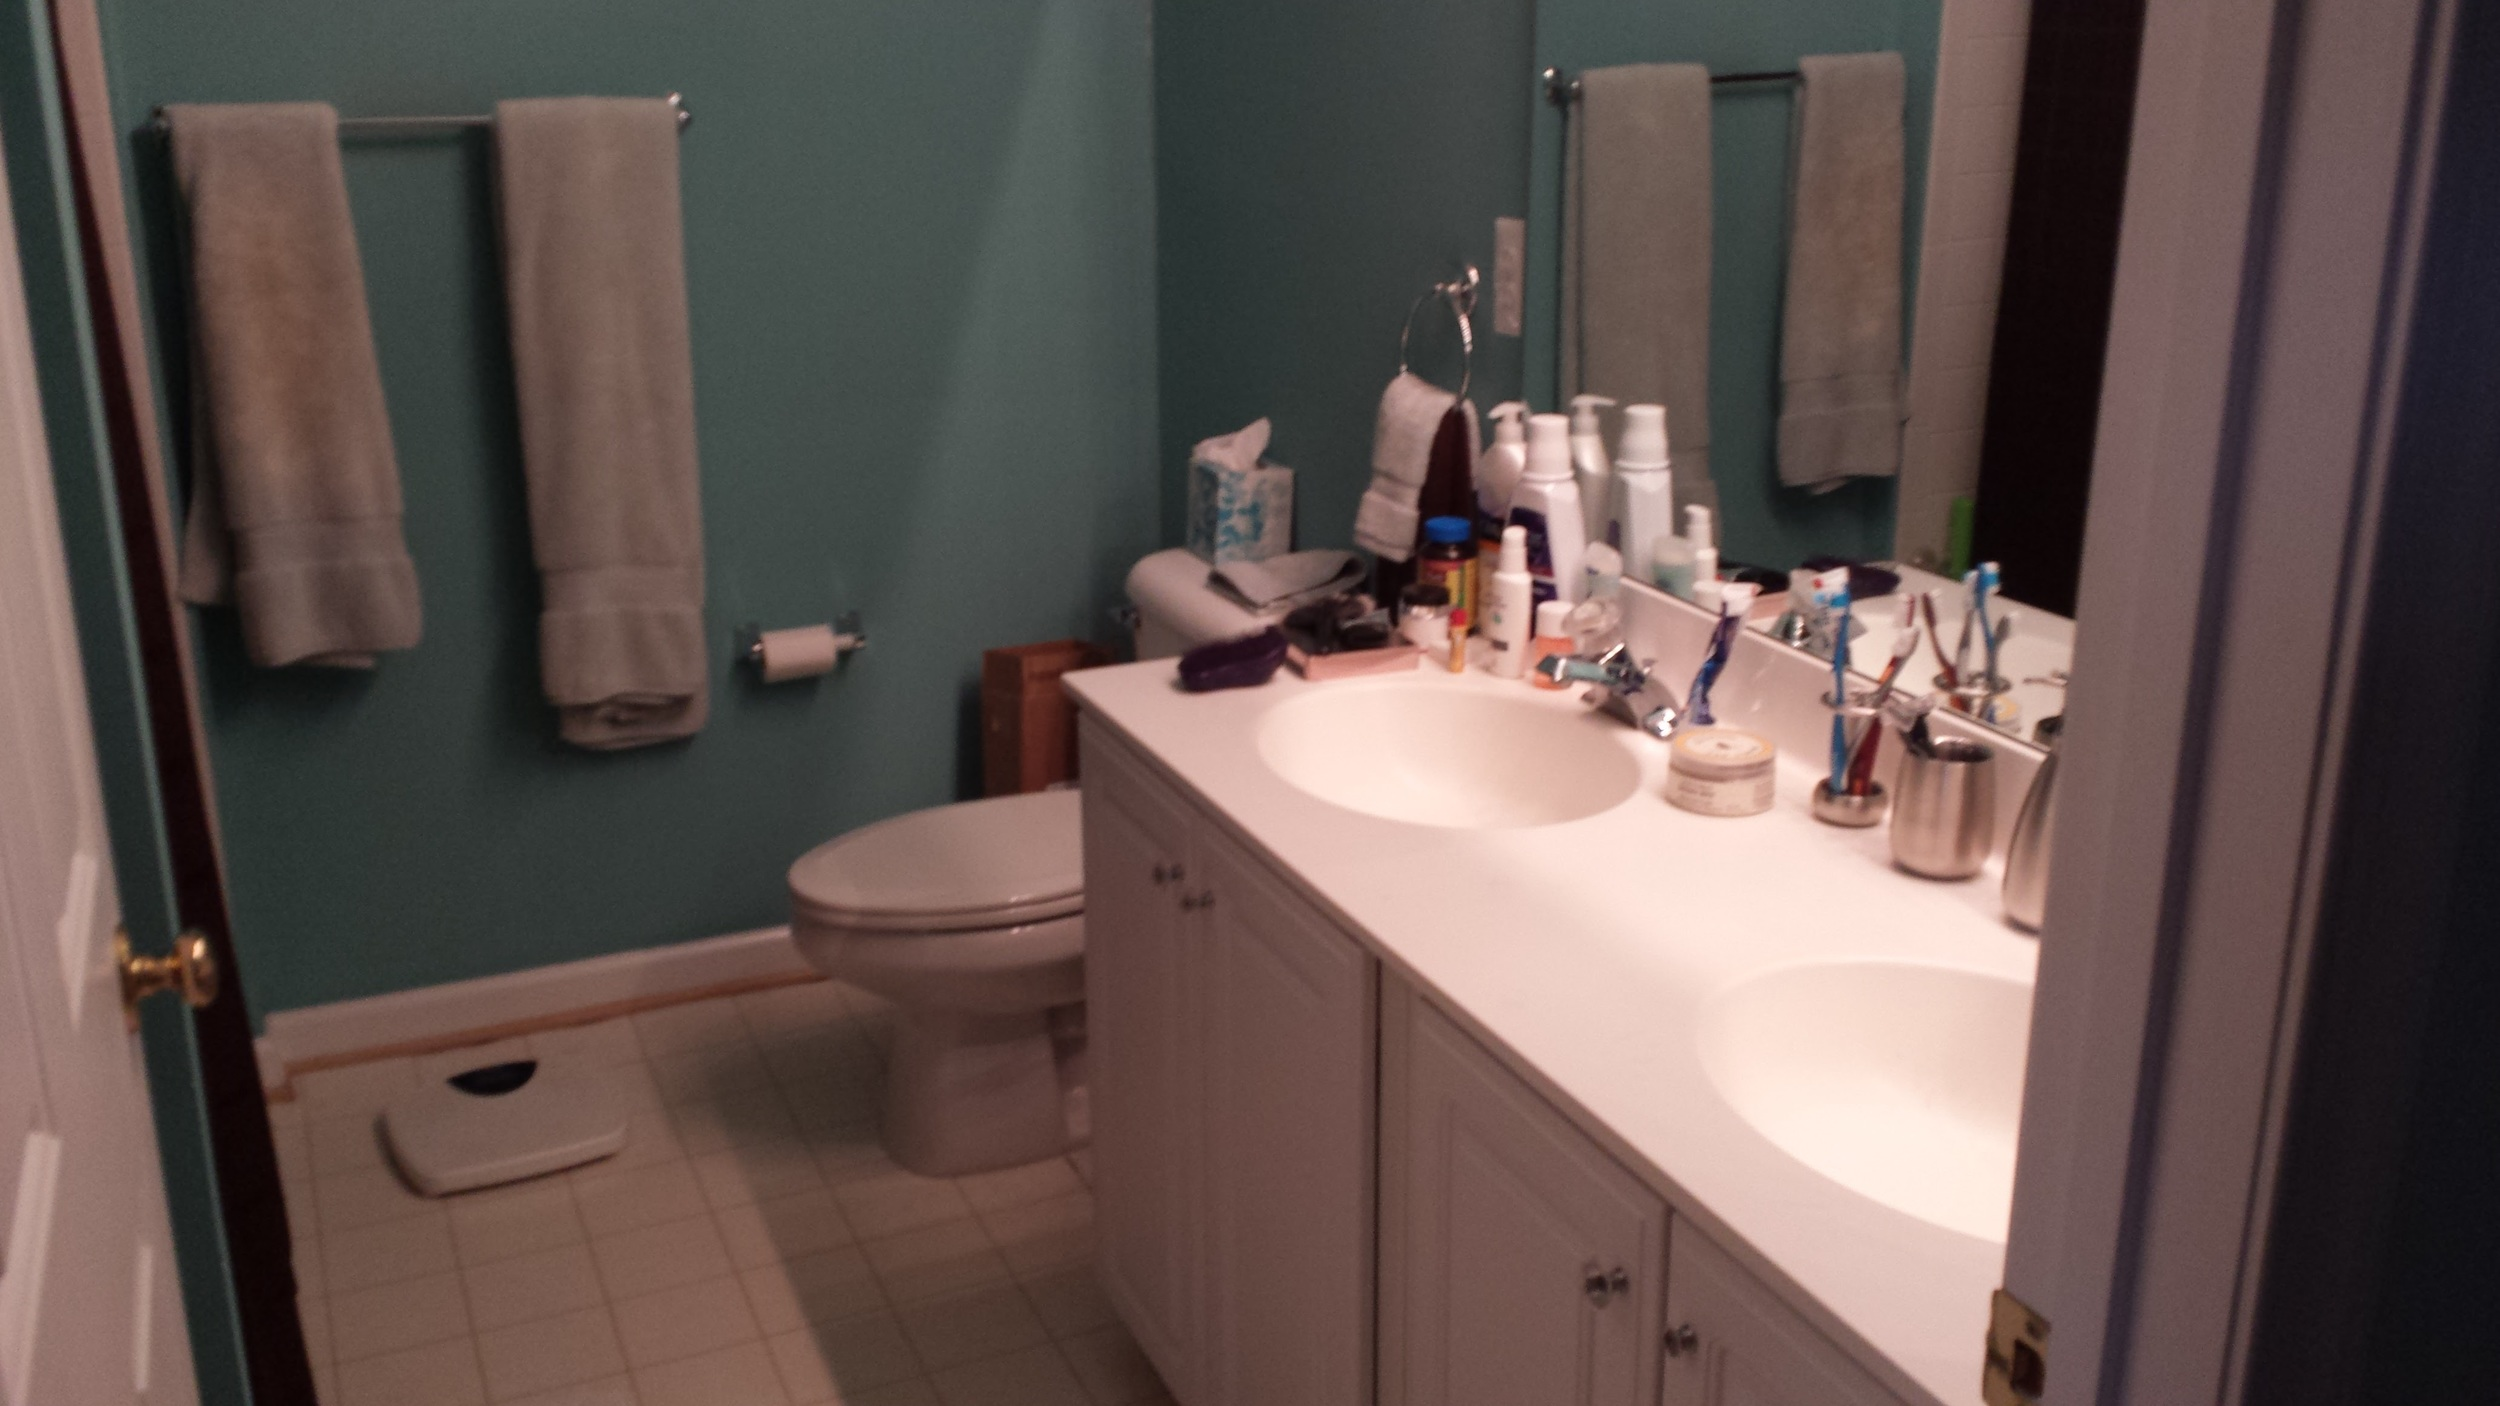 2015-05-31 14.17.29 master bathroom.jpg